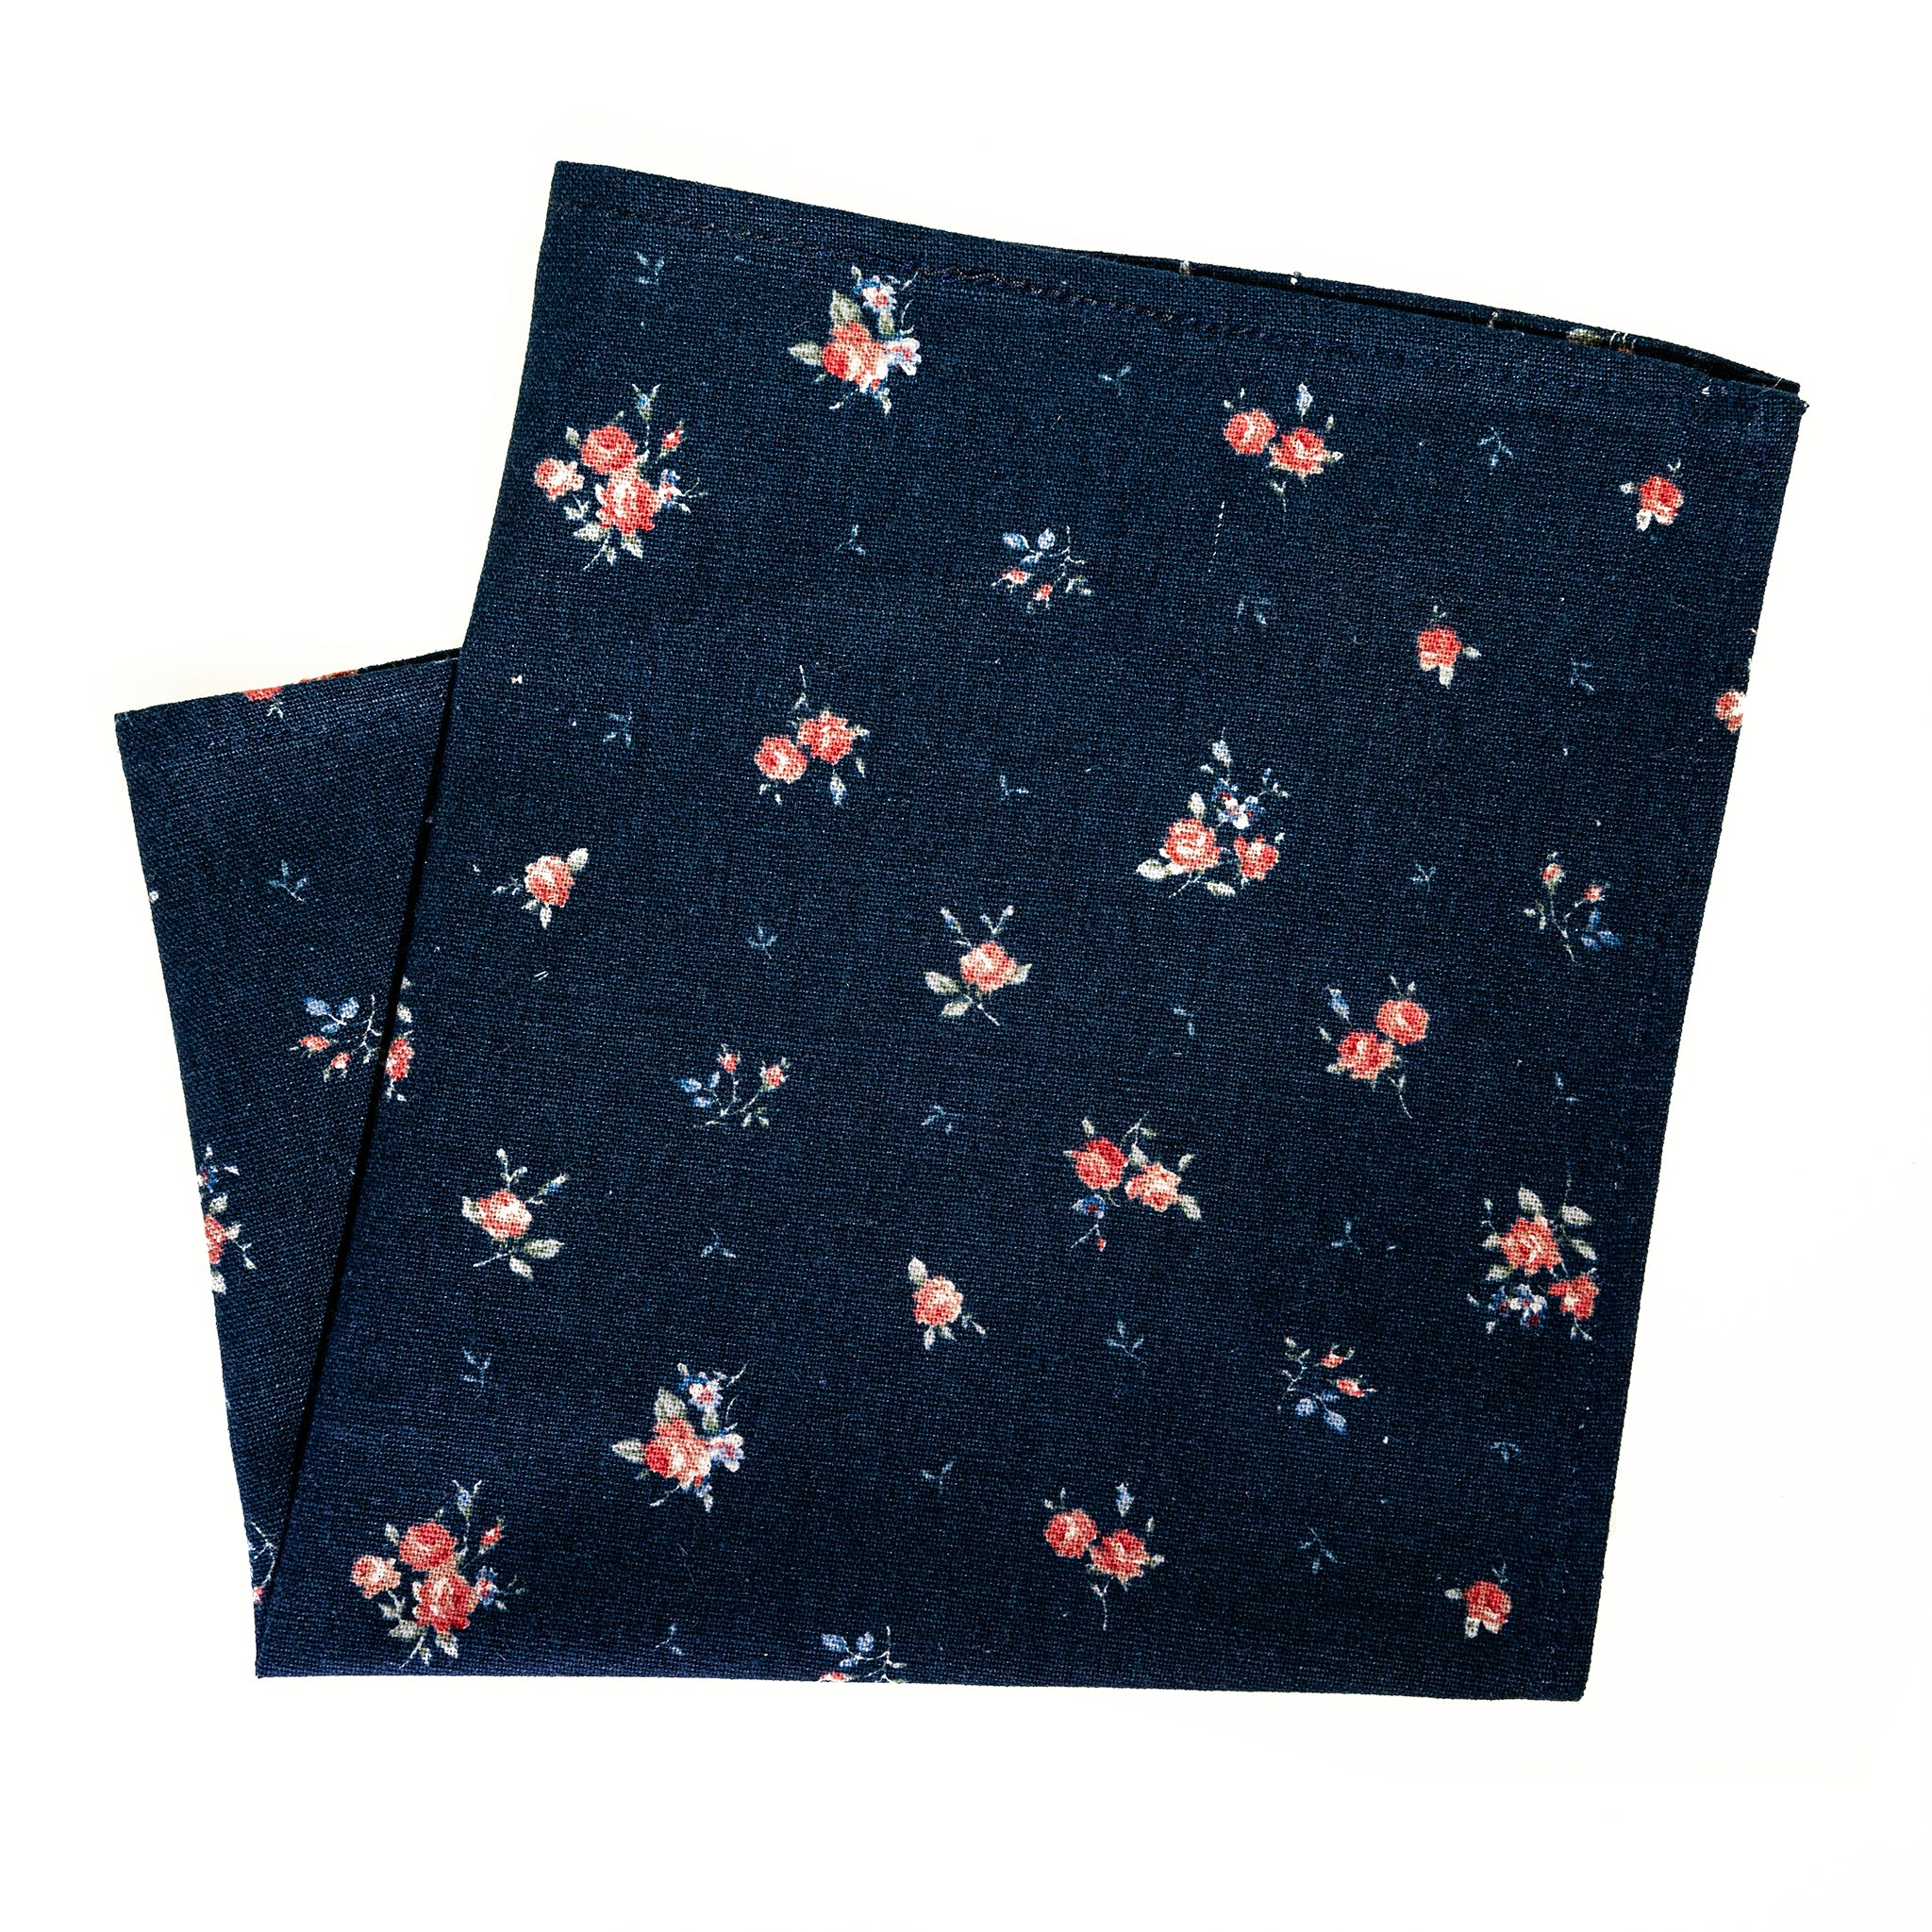 Japanese Floral Print on Navy Pocket Square